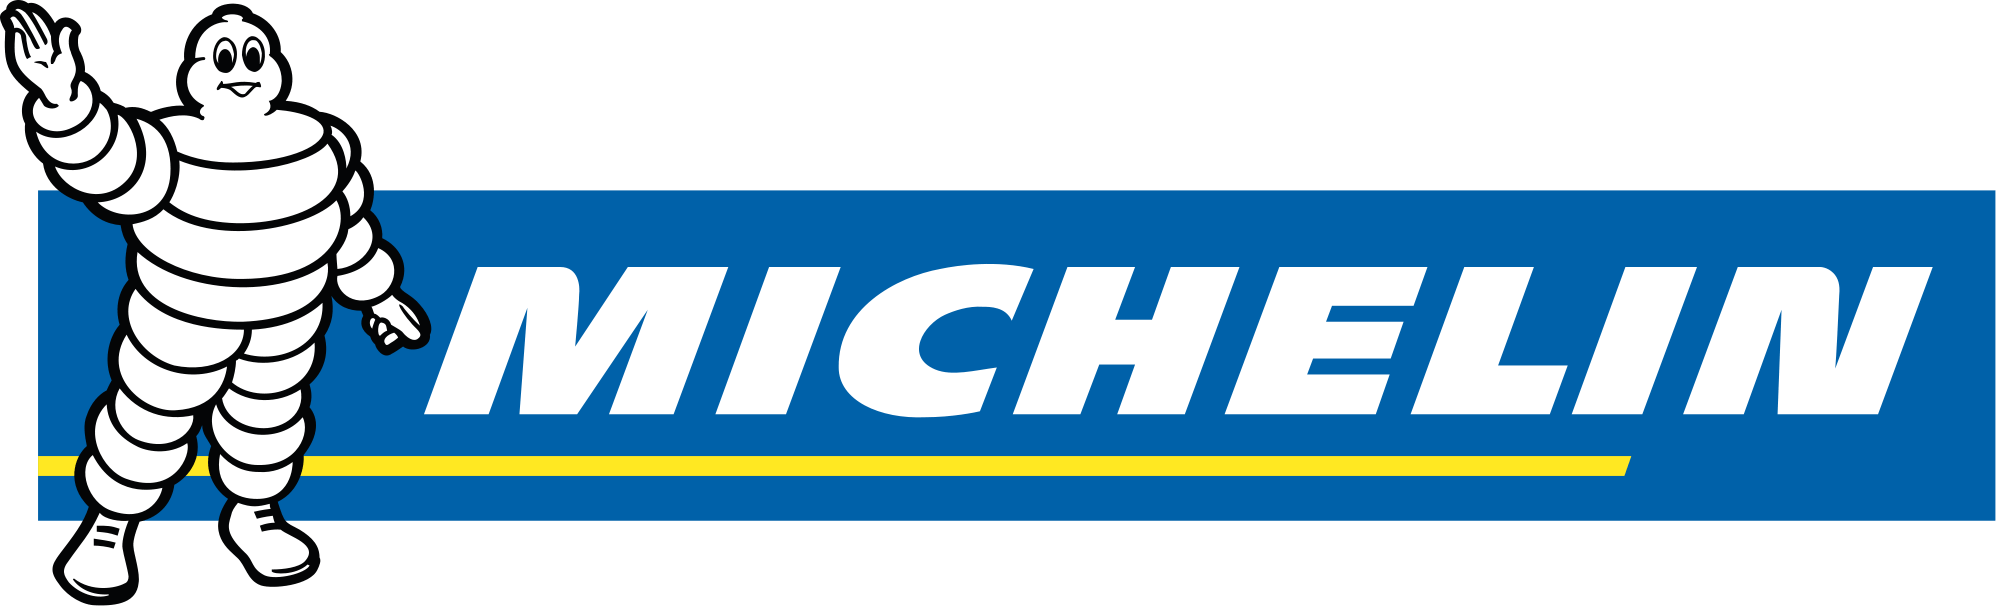 Logo Marque Michelin PNG transparents - StickPNG